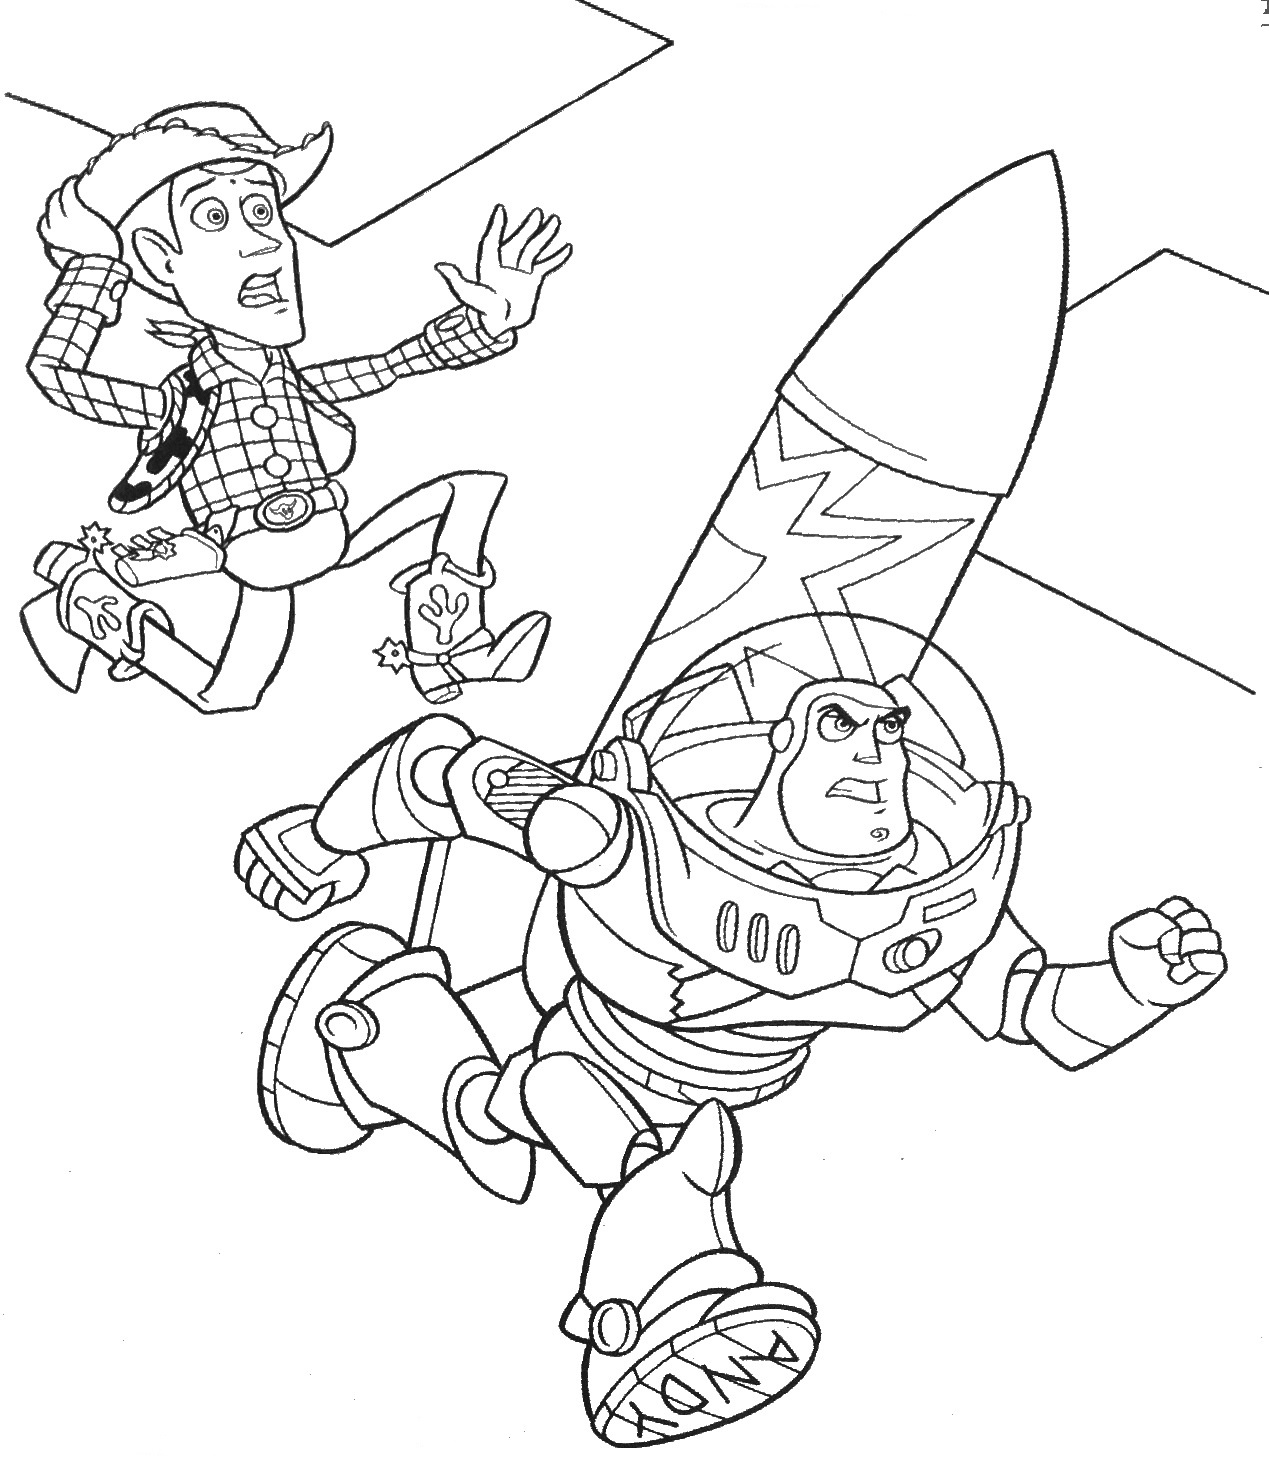 Bullseye drawing at free for personal for Bullseye coloring page